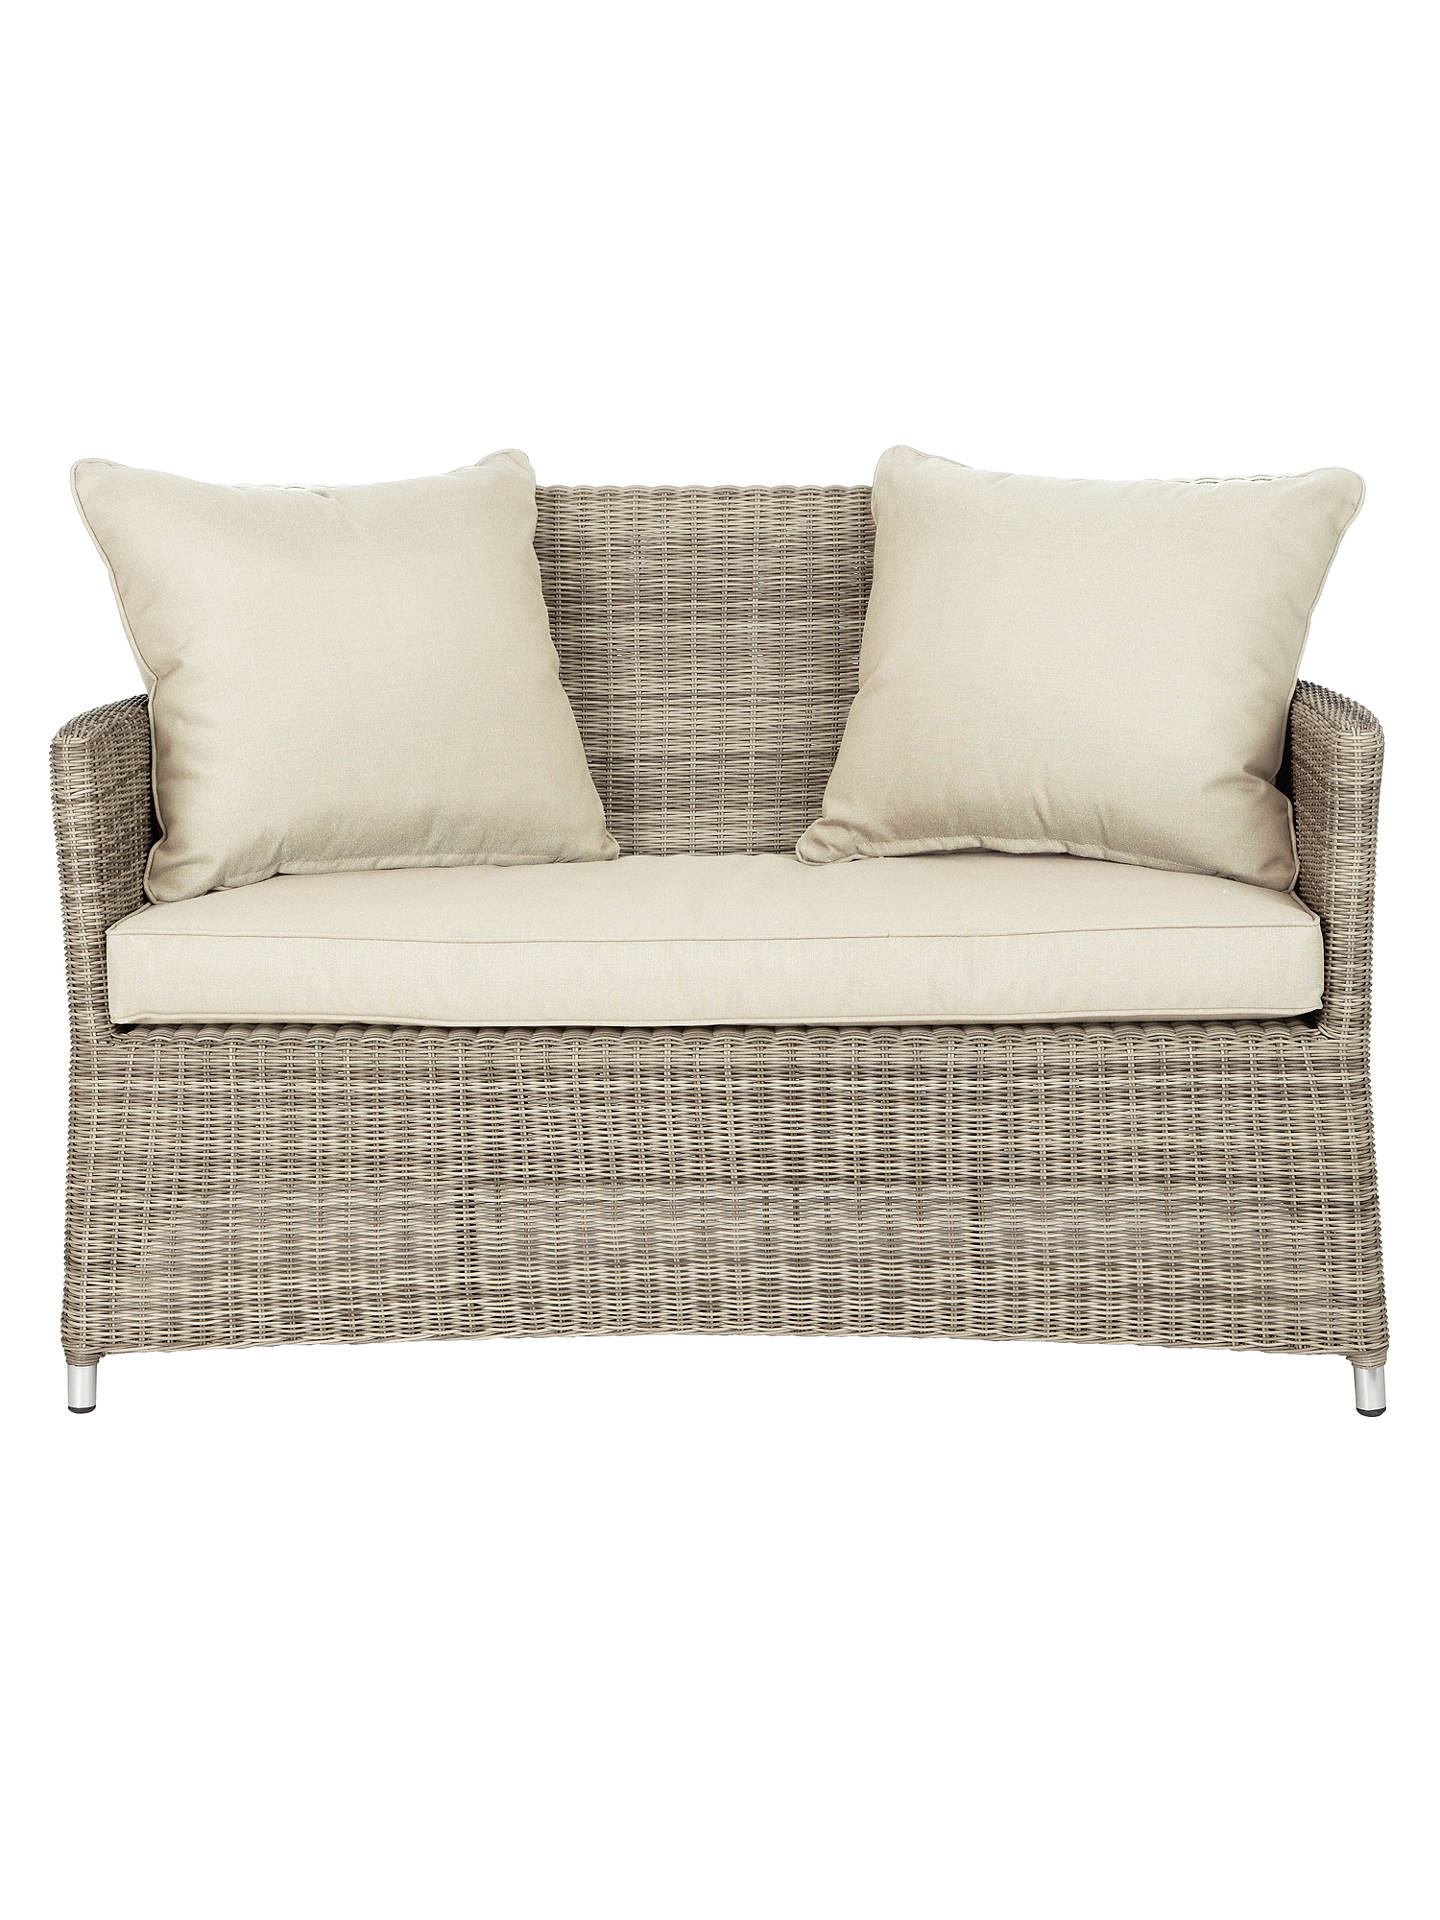 BuyJohn Lewis & Partners Dante 2 Seater Outdoor Sofa, Natural Online at johnlewis.com